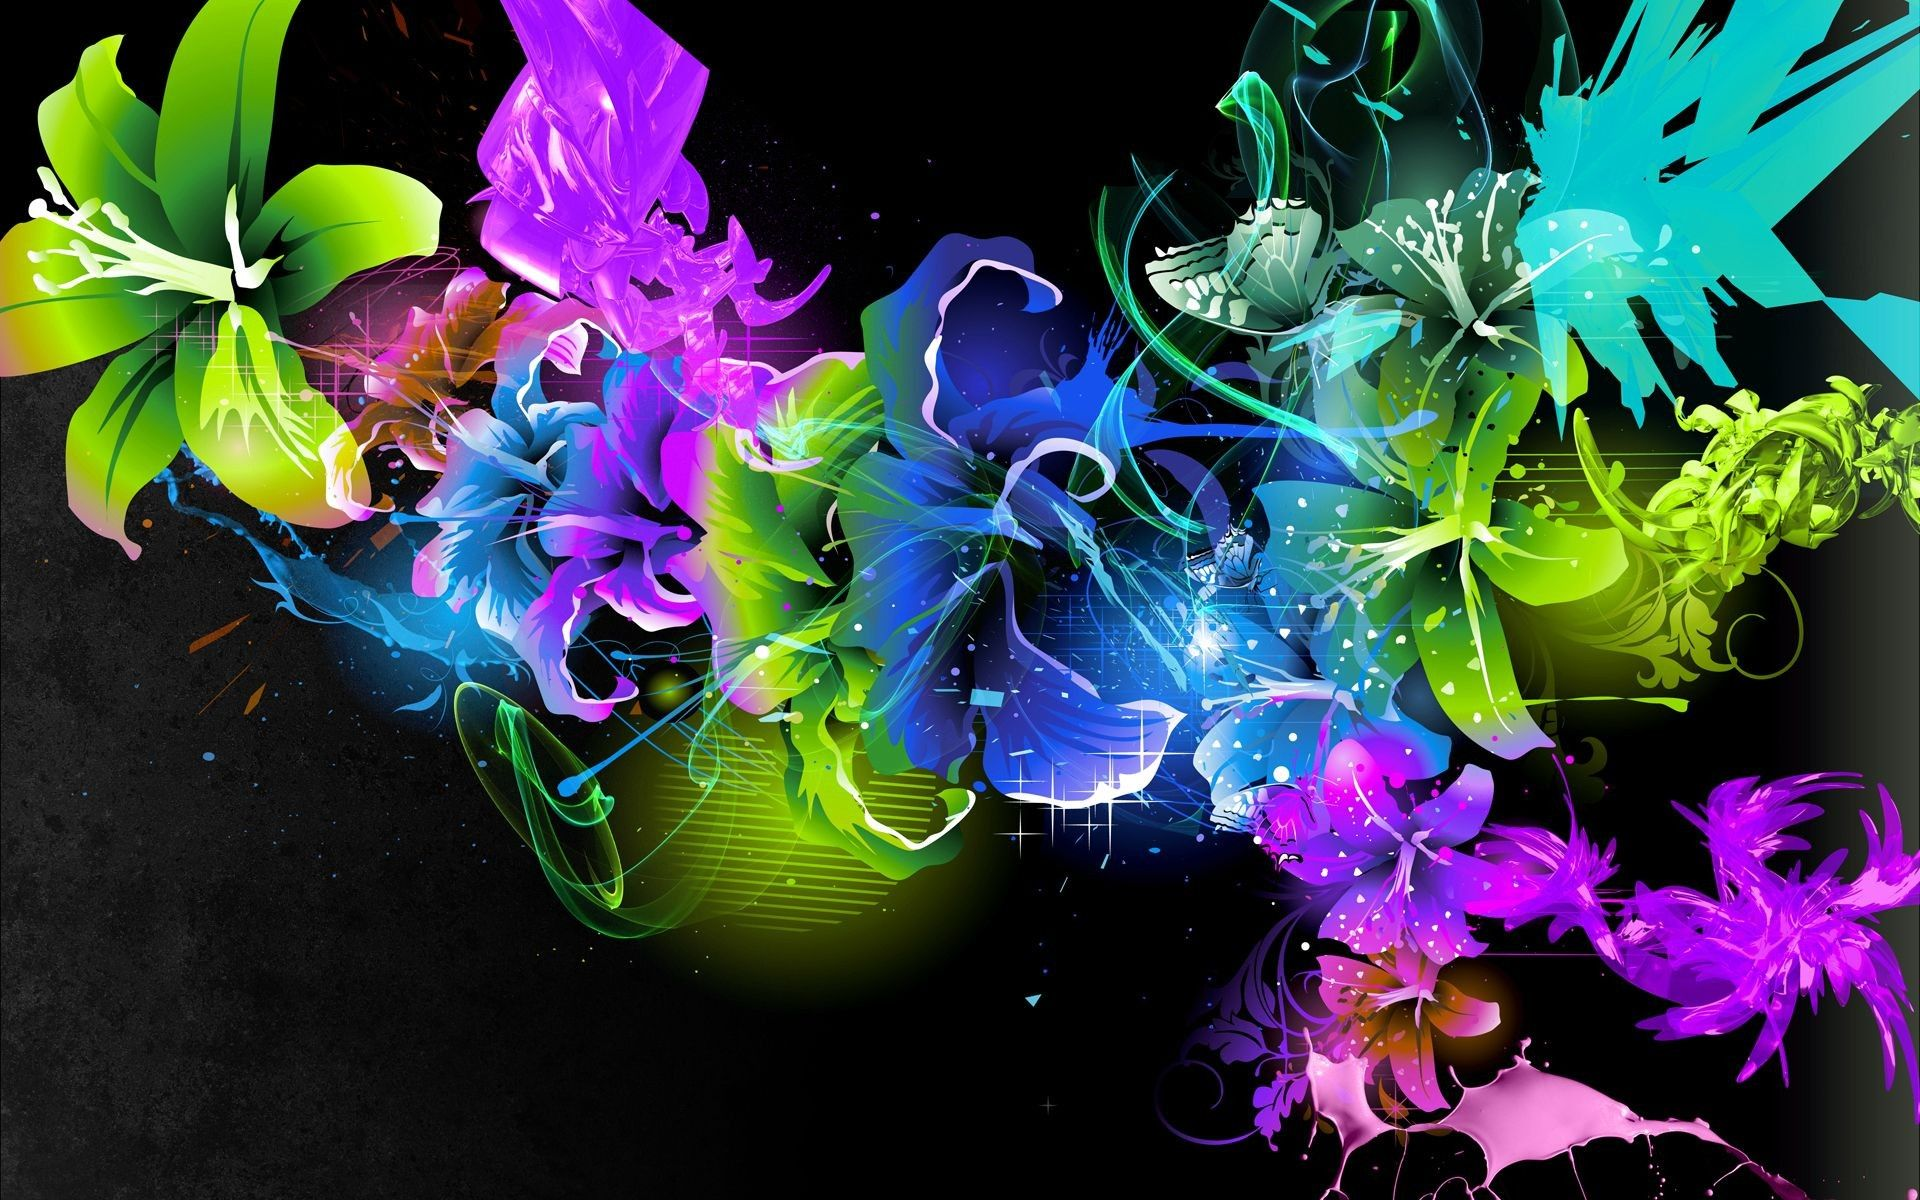 Free download abstract wallpaper background abstract wallpaper background for desktop please your visitedhttp